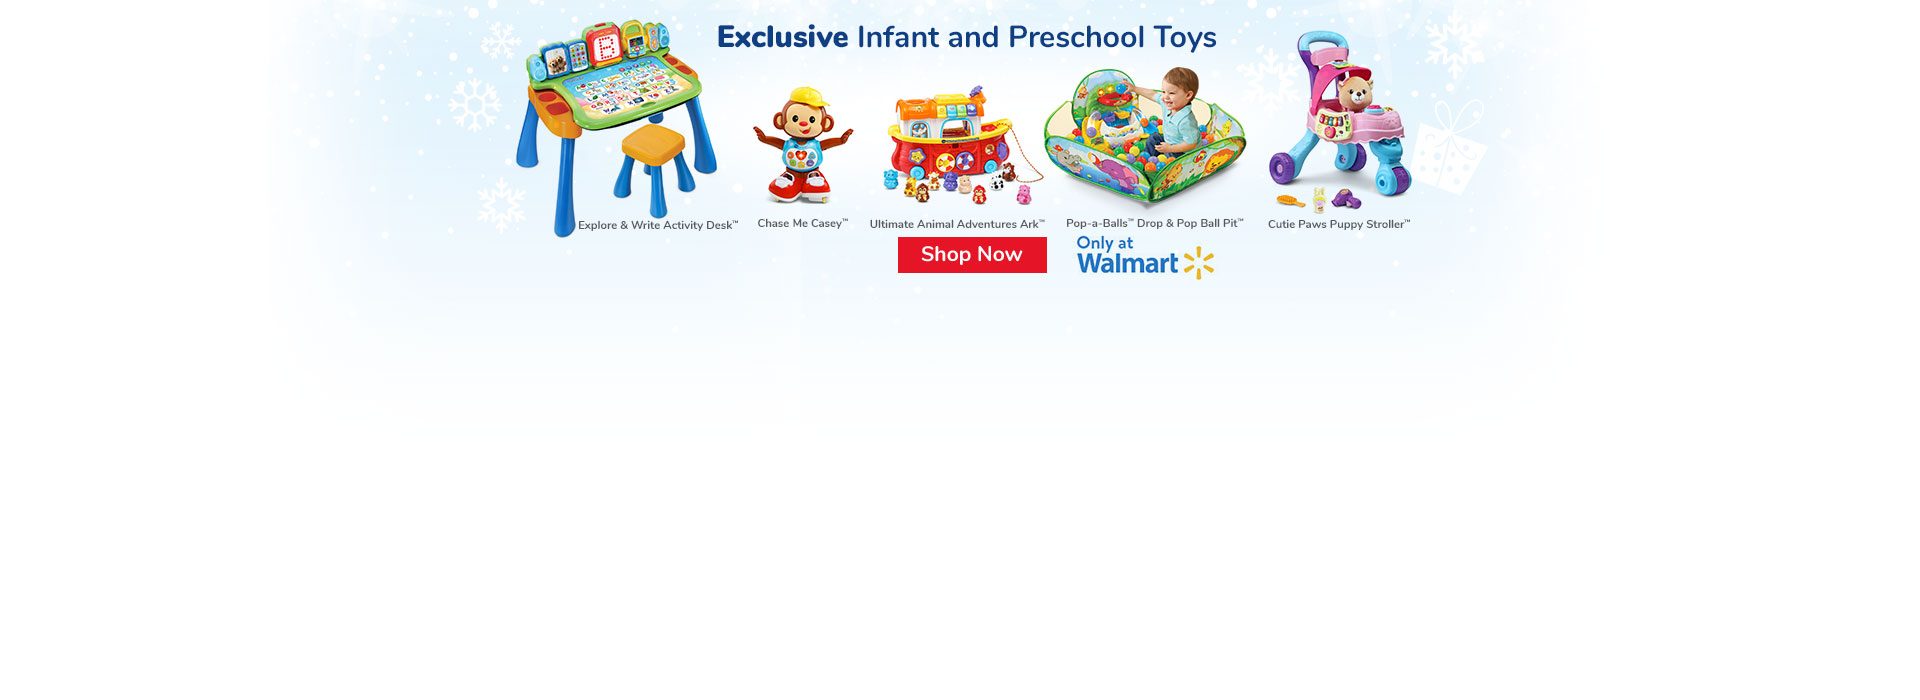 Exclusive Infant and Preschool Toys at Walmart